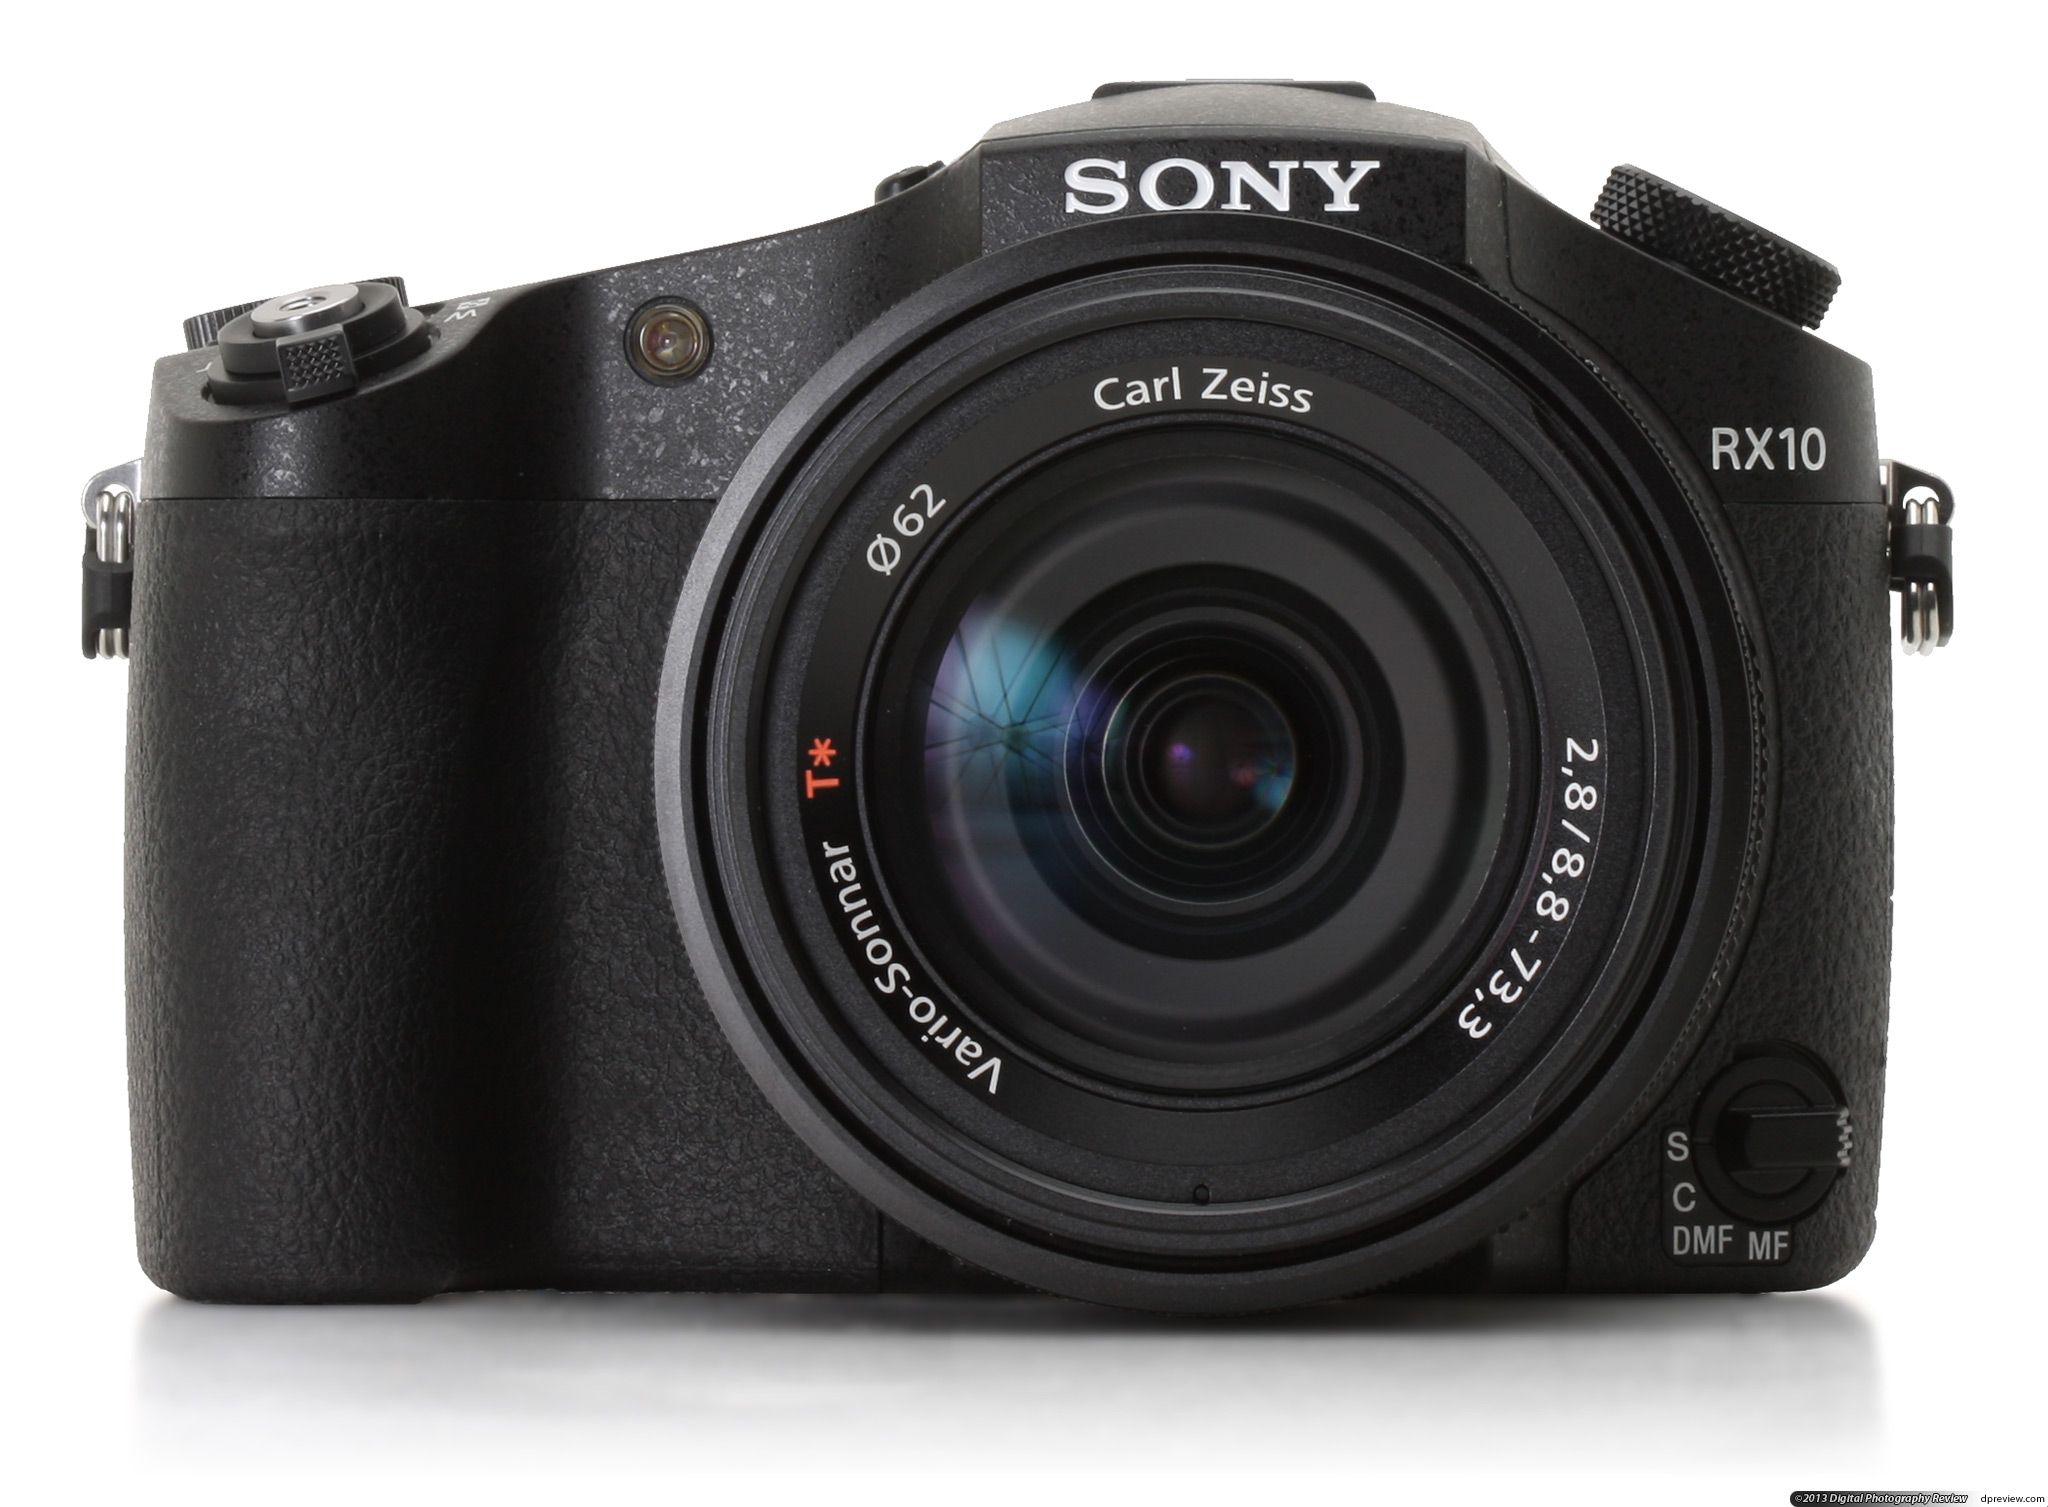 Sony CyberShot RX10, Alpha 7 and Alpha 7R Launched - RX10